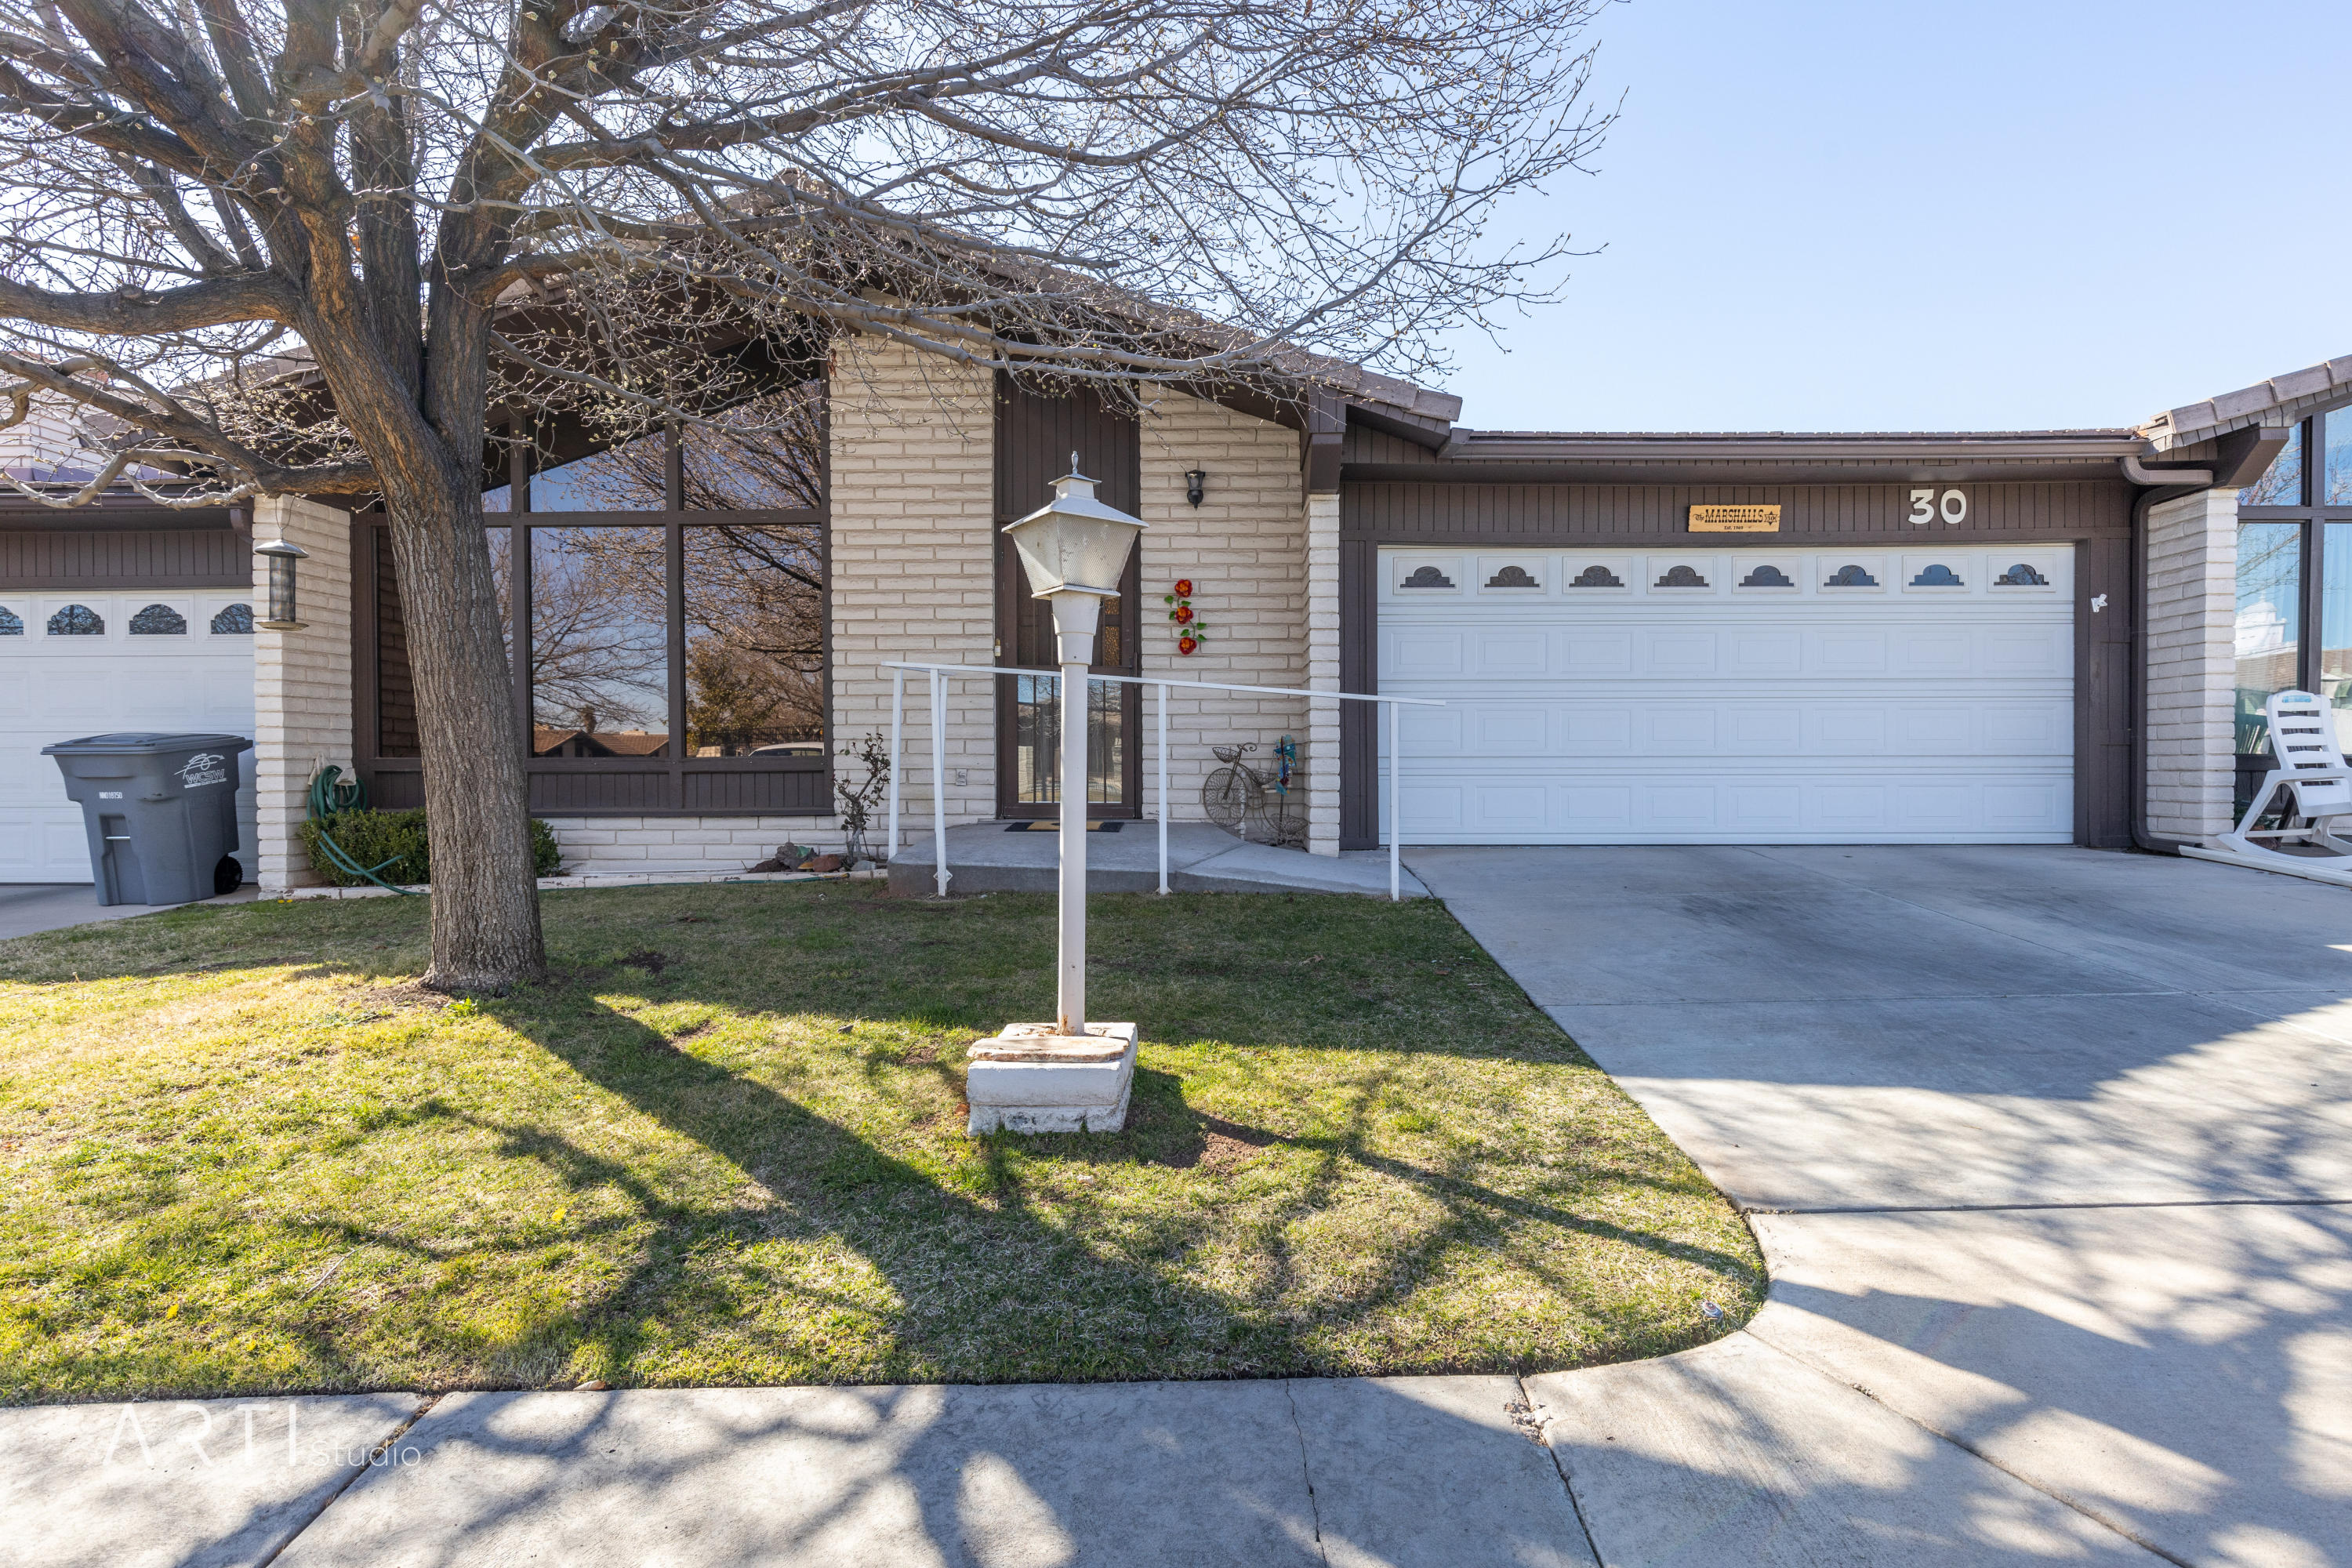 55 E 700 #30 S, St George in Washington County, UT 84770 Home for Sale